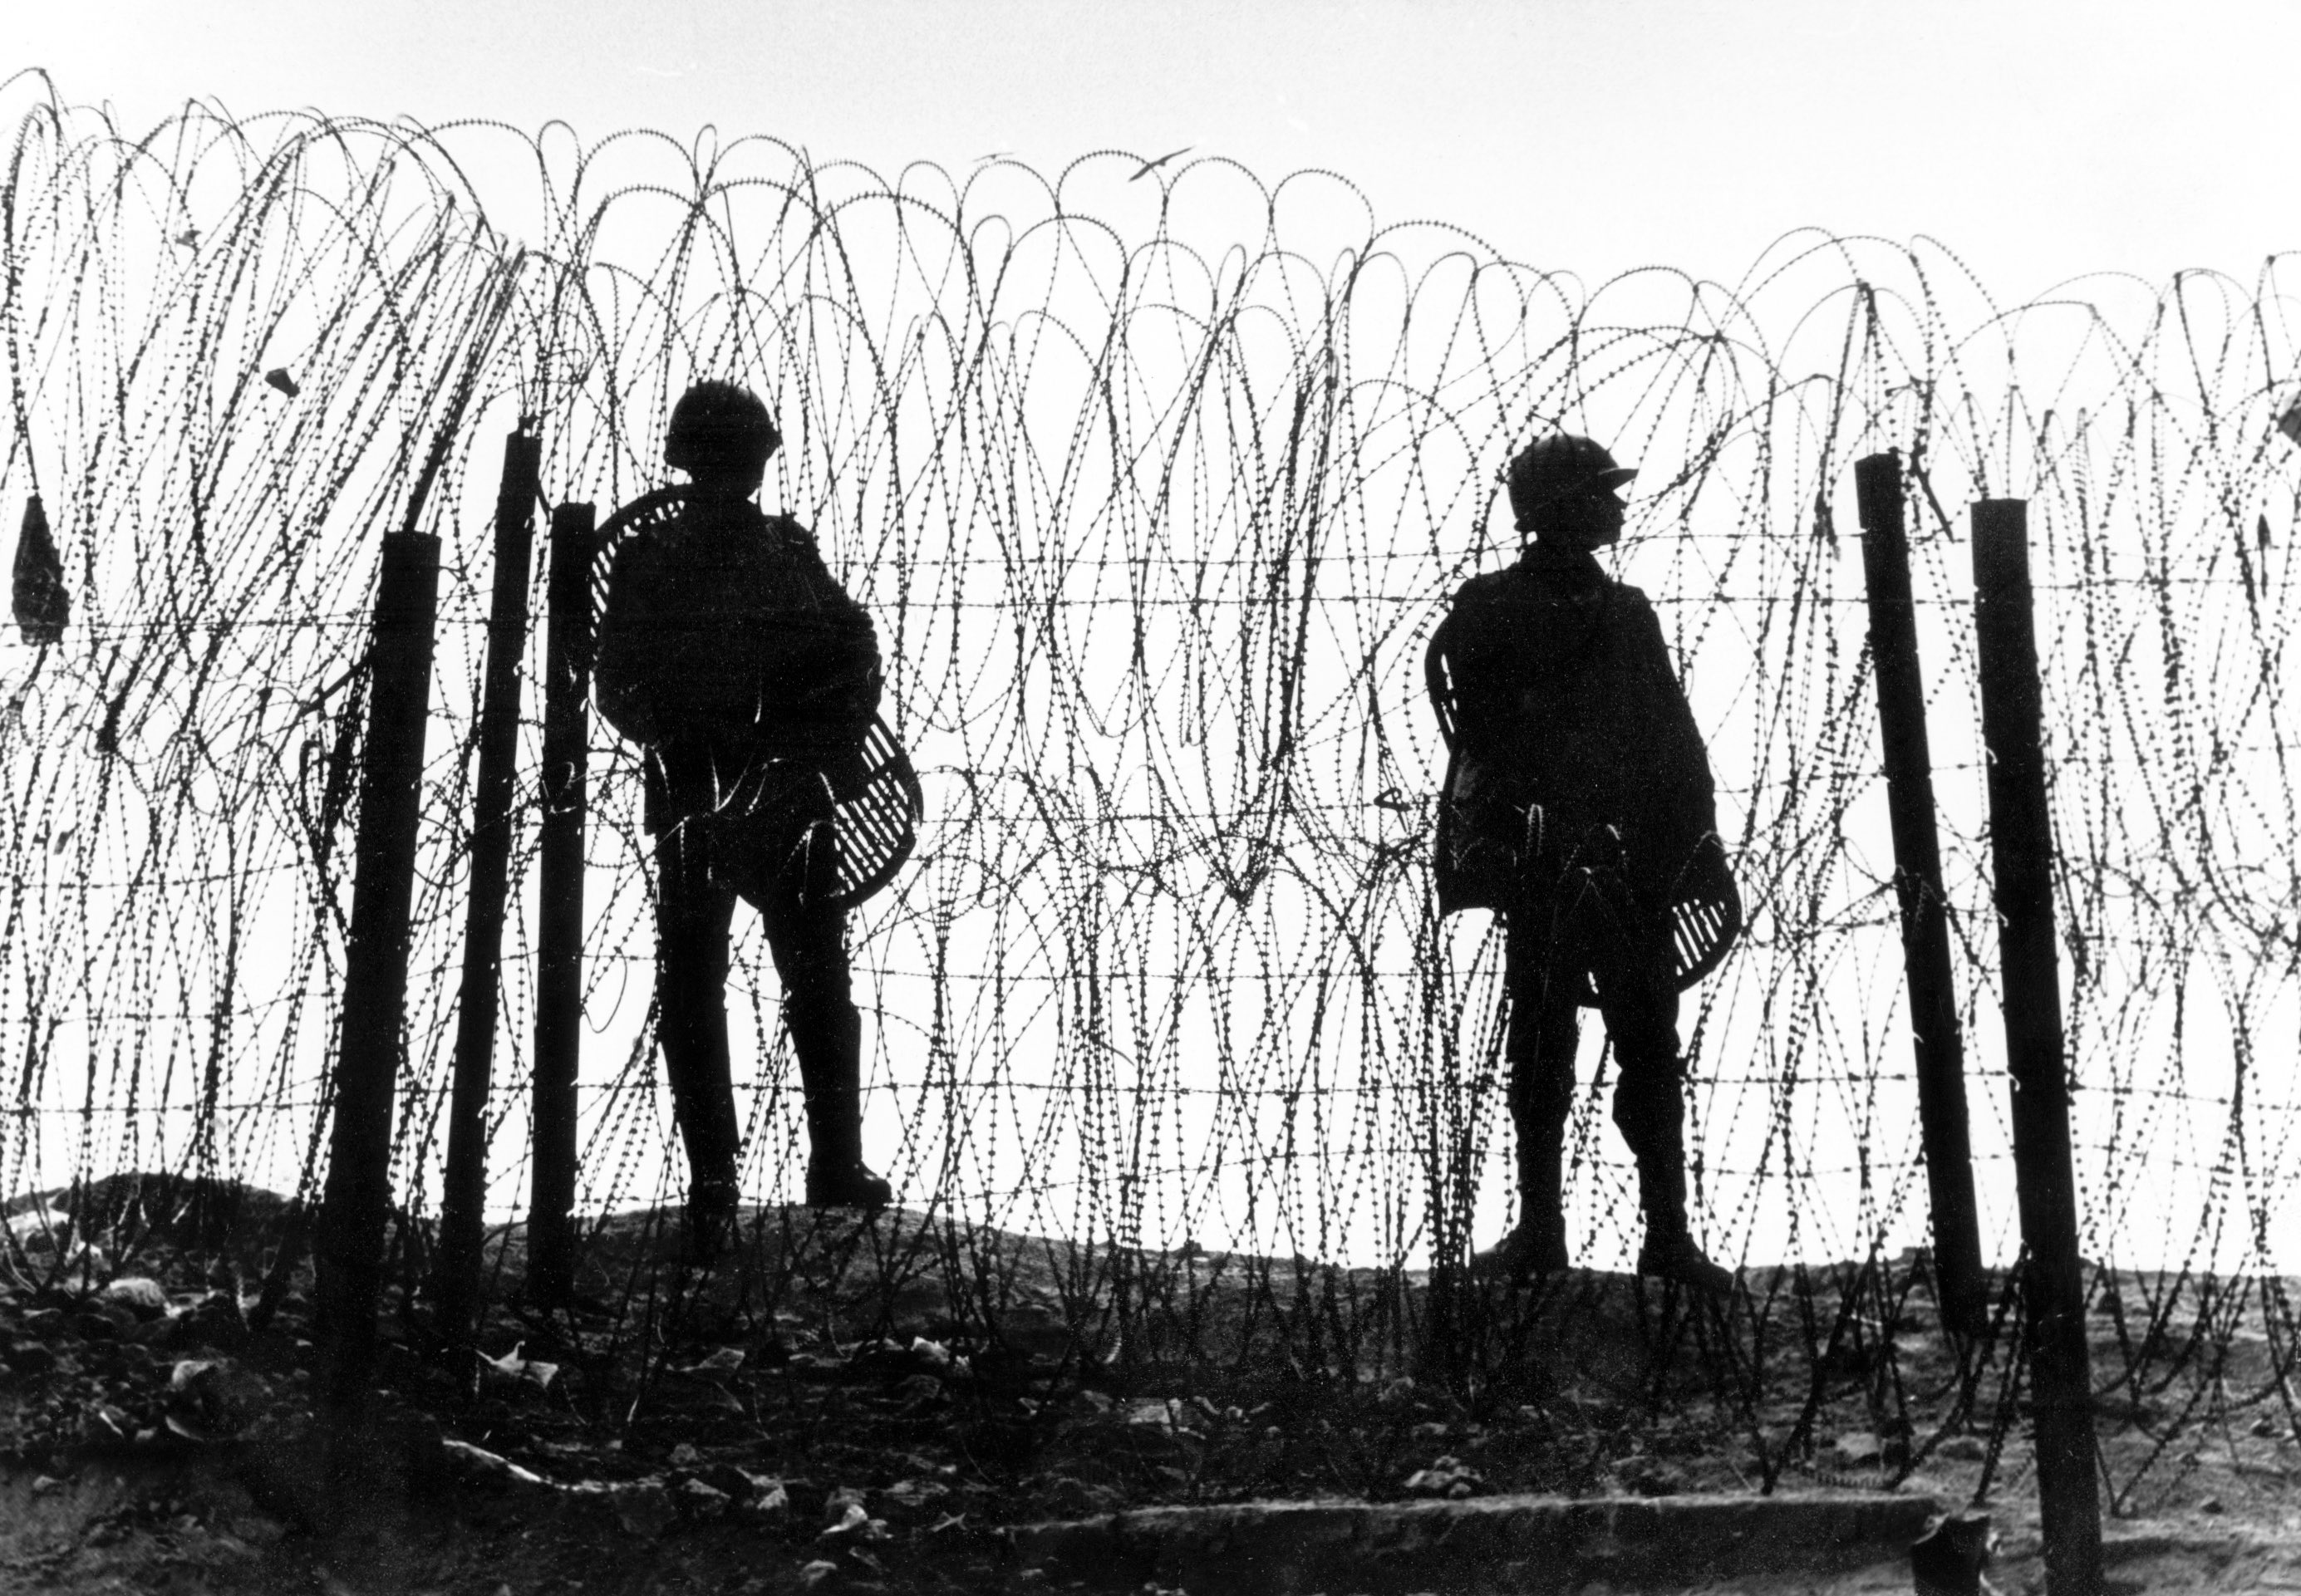 Barbed wire and paramilitary forces around the area of the destroyed Babri Masjid, on December 7, 1992. Credit: T. Narayan